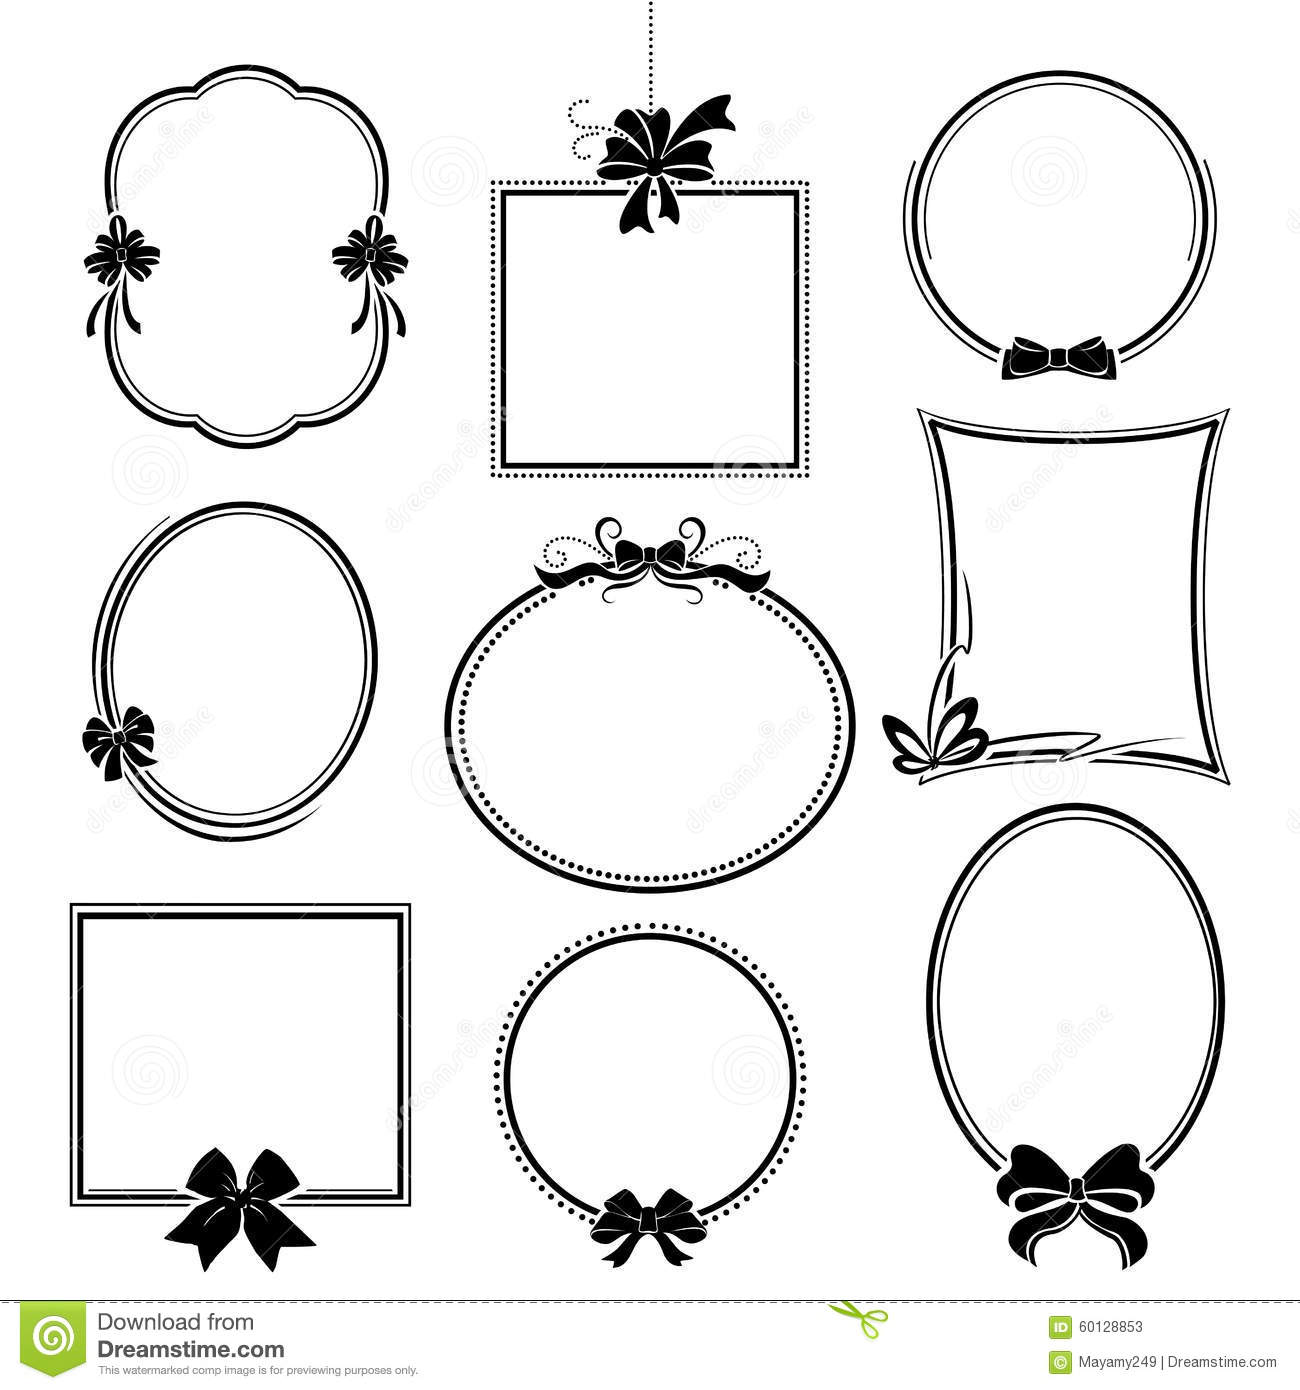 Set of frames with bows stock vector. Illustration of circle - 60128853